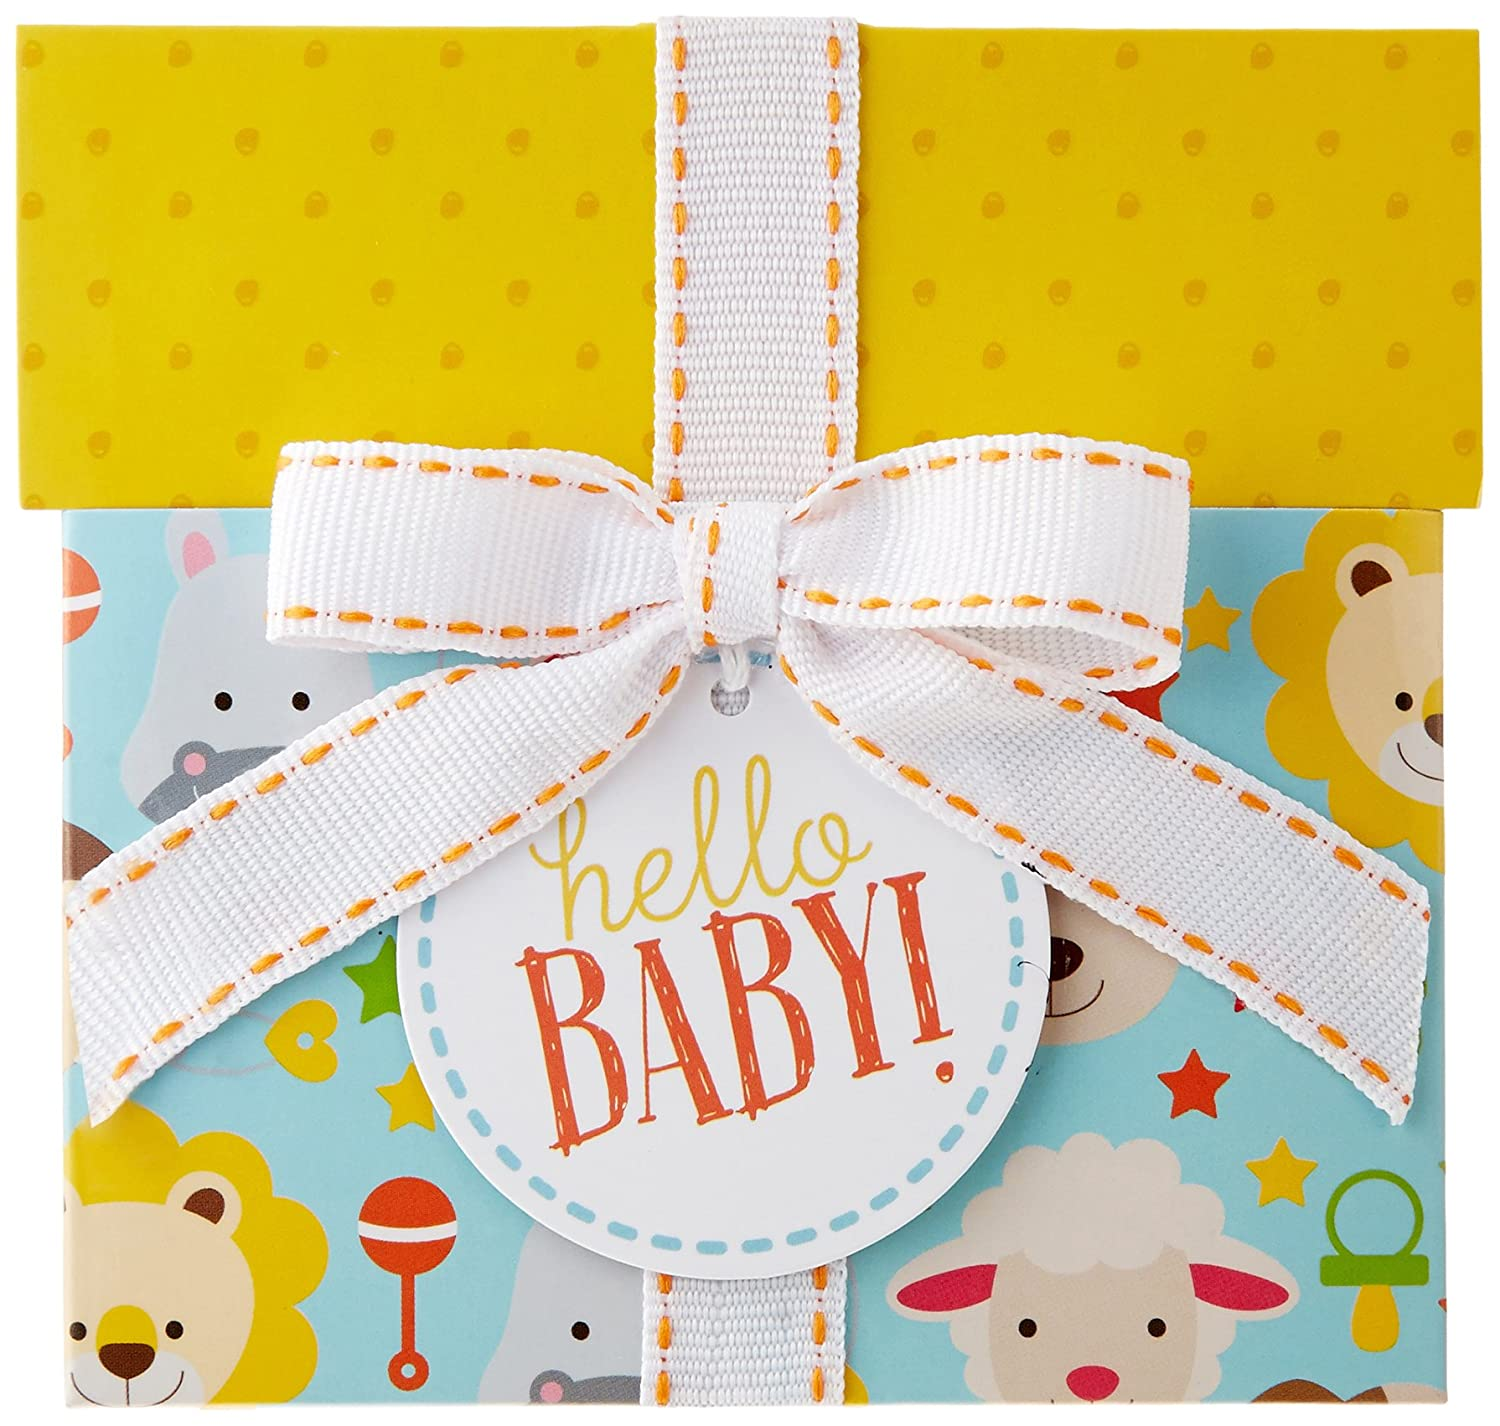 Amazon.ca Gift Card in a Hello Baby Reveal (Classic White Card Design) Amazon.com.ca Inc.